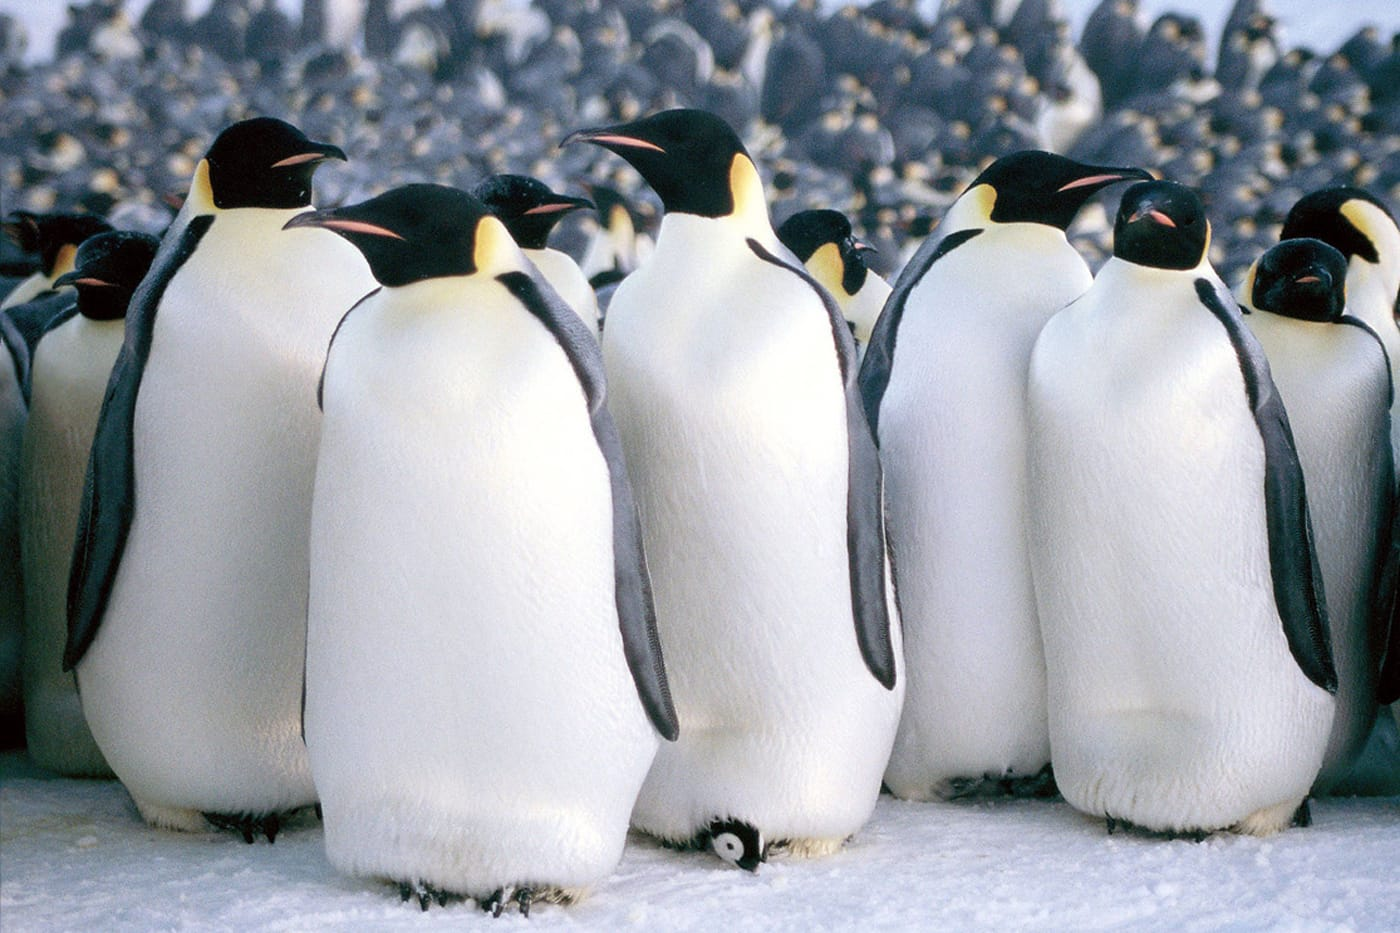 Docs 4 Tots | March of the Penguins